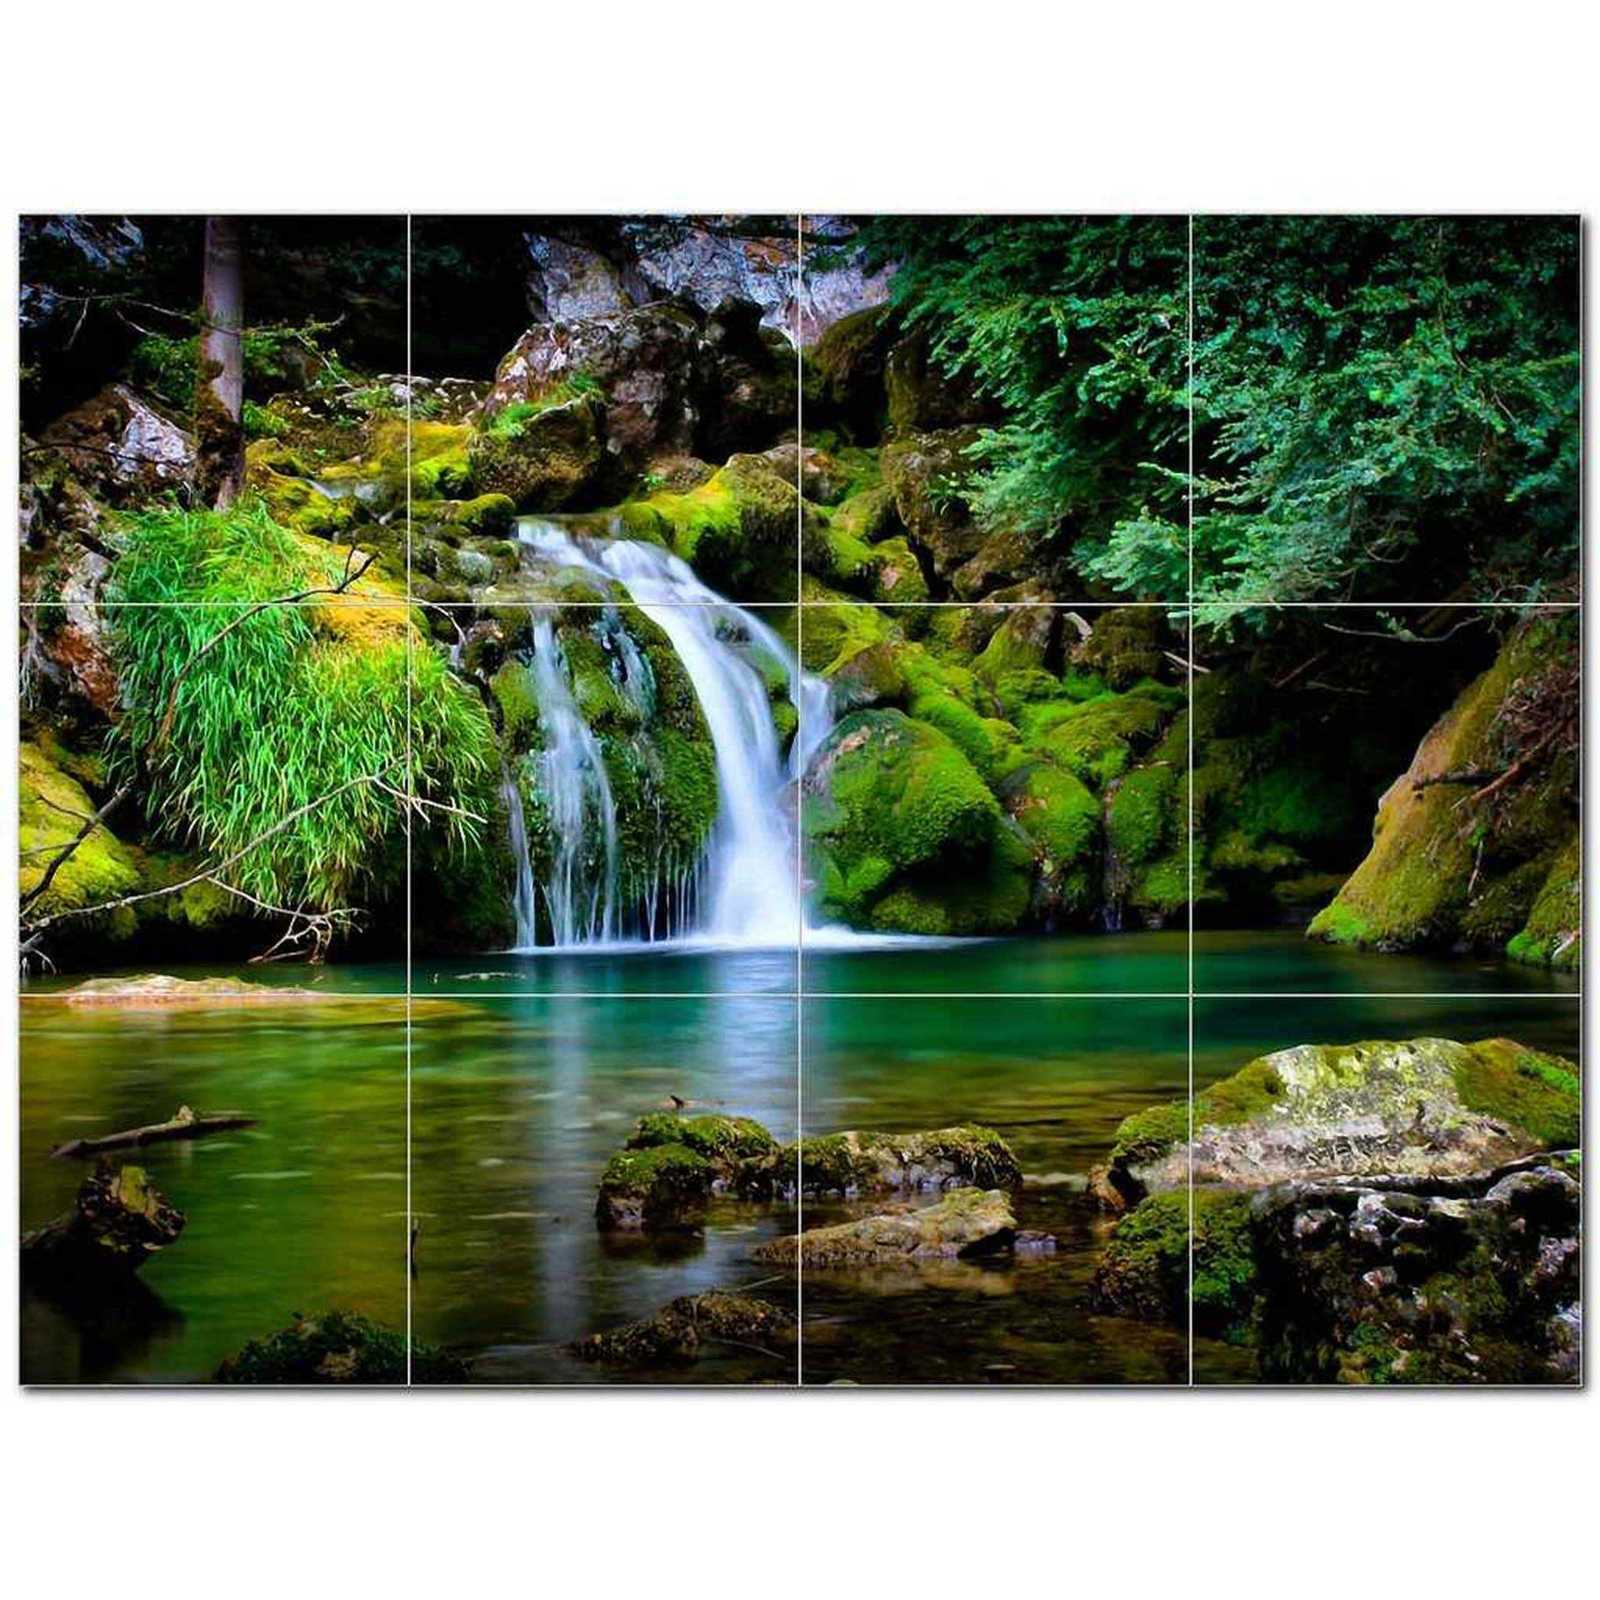 Primary image for Waterfall Picture Ceramic Tile Mural Kitchen Backsplash Bathroom Shower BAZ40620